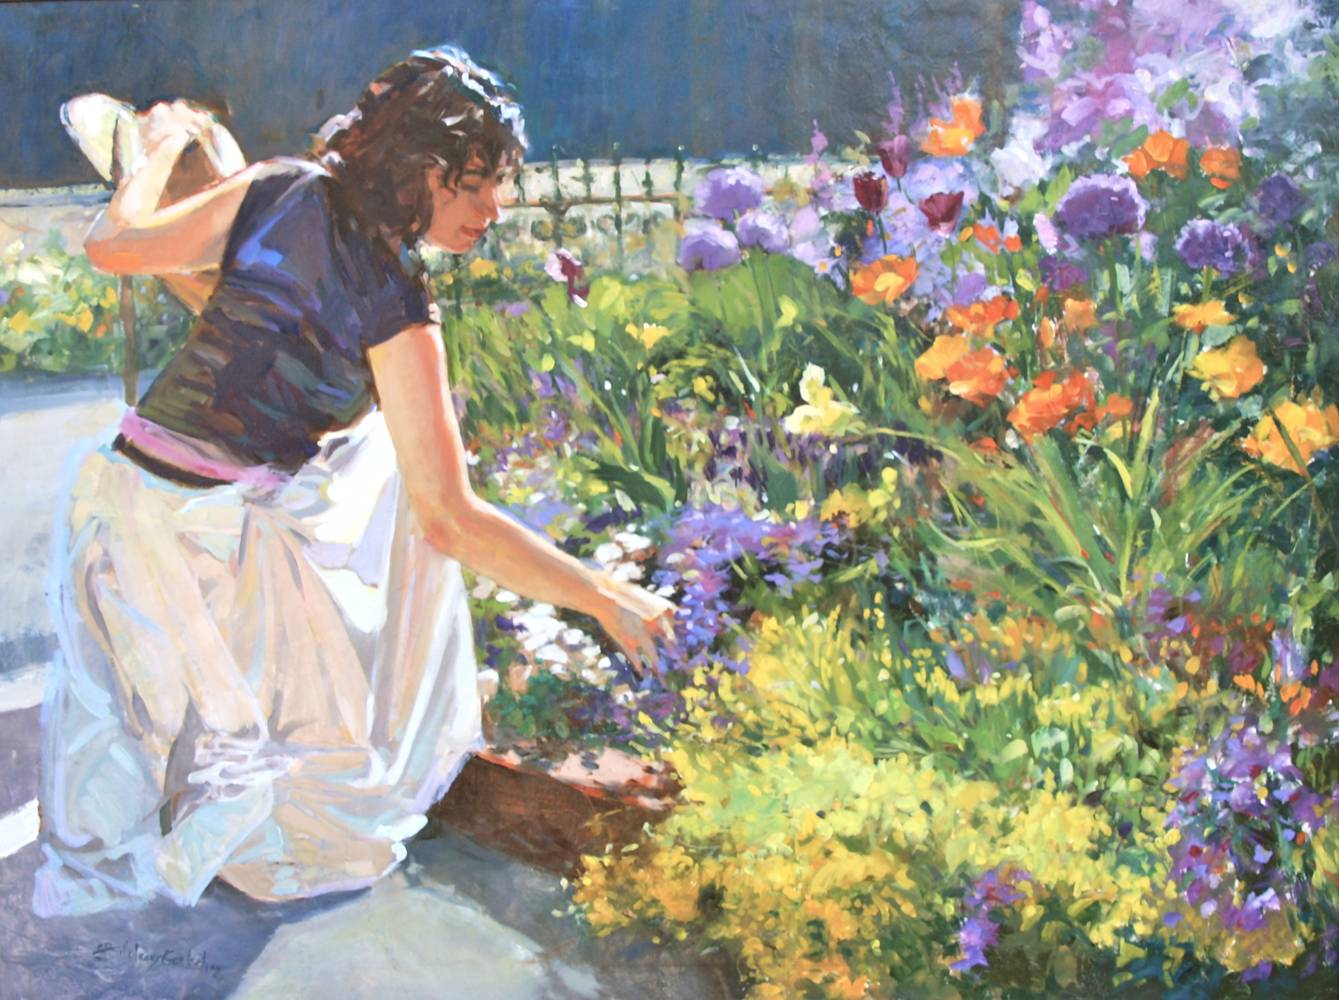 Oil painting Lion House Gardens by Susette Gertsch